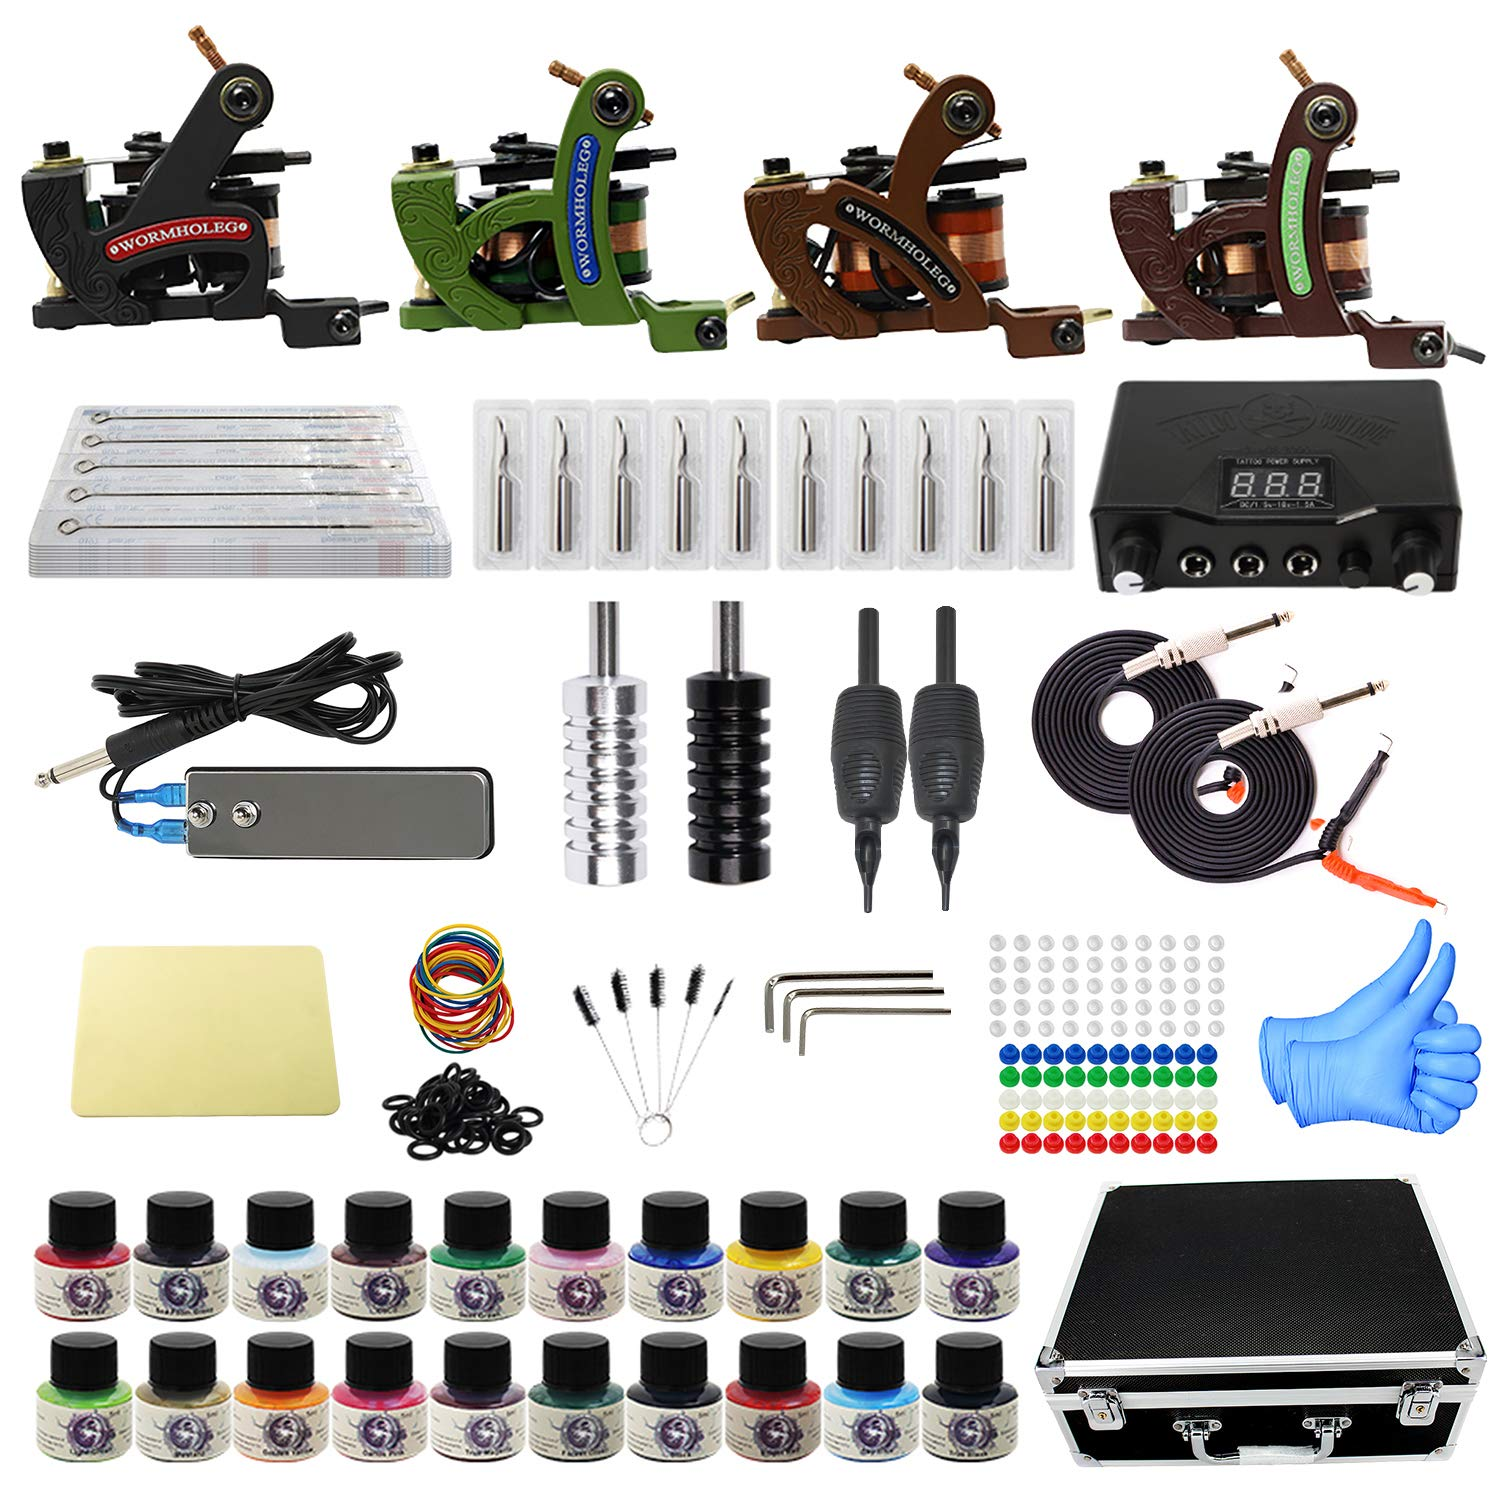 Amazon Com Tattoo Kit With Case Complete Tattoo Gun Kit 4pcs Starter Tattoo Machine Kit Tattoo Kit 20 Colors Tattoo Inks For Beginners Cd013 Beauty To those in law enforcement and the military, guns are symbols of authority. tattoo kit with case complete tattoo gun kit 4pcs starter tattoo machine kit tattoo kit 20 colors tattoo inks for beginners cd013